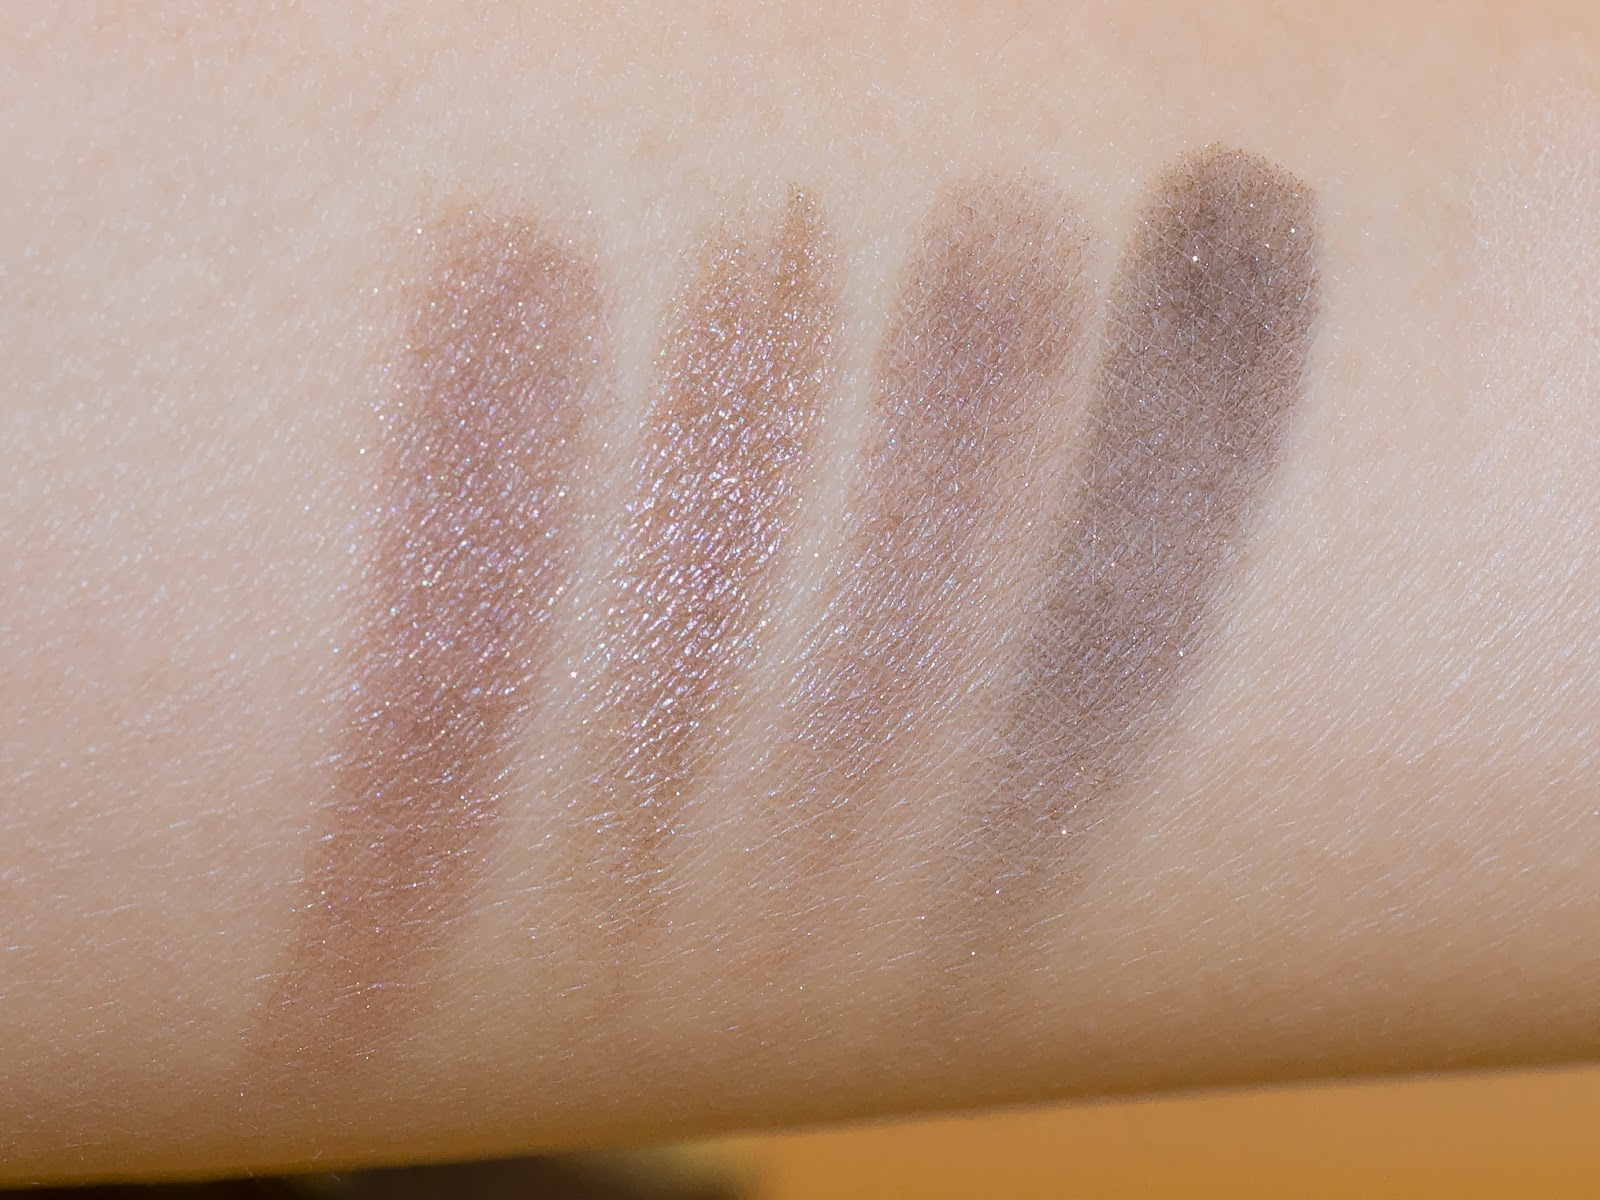 Urban Decay Naked 3 Eyeshadow Palette Review, Swatches